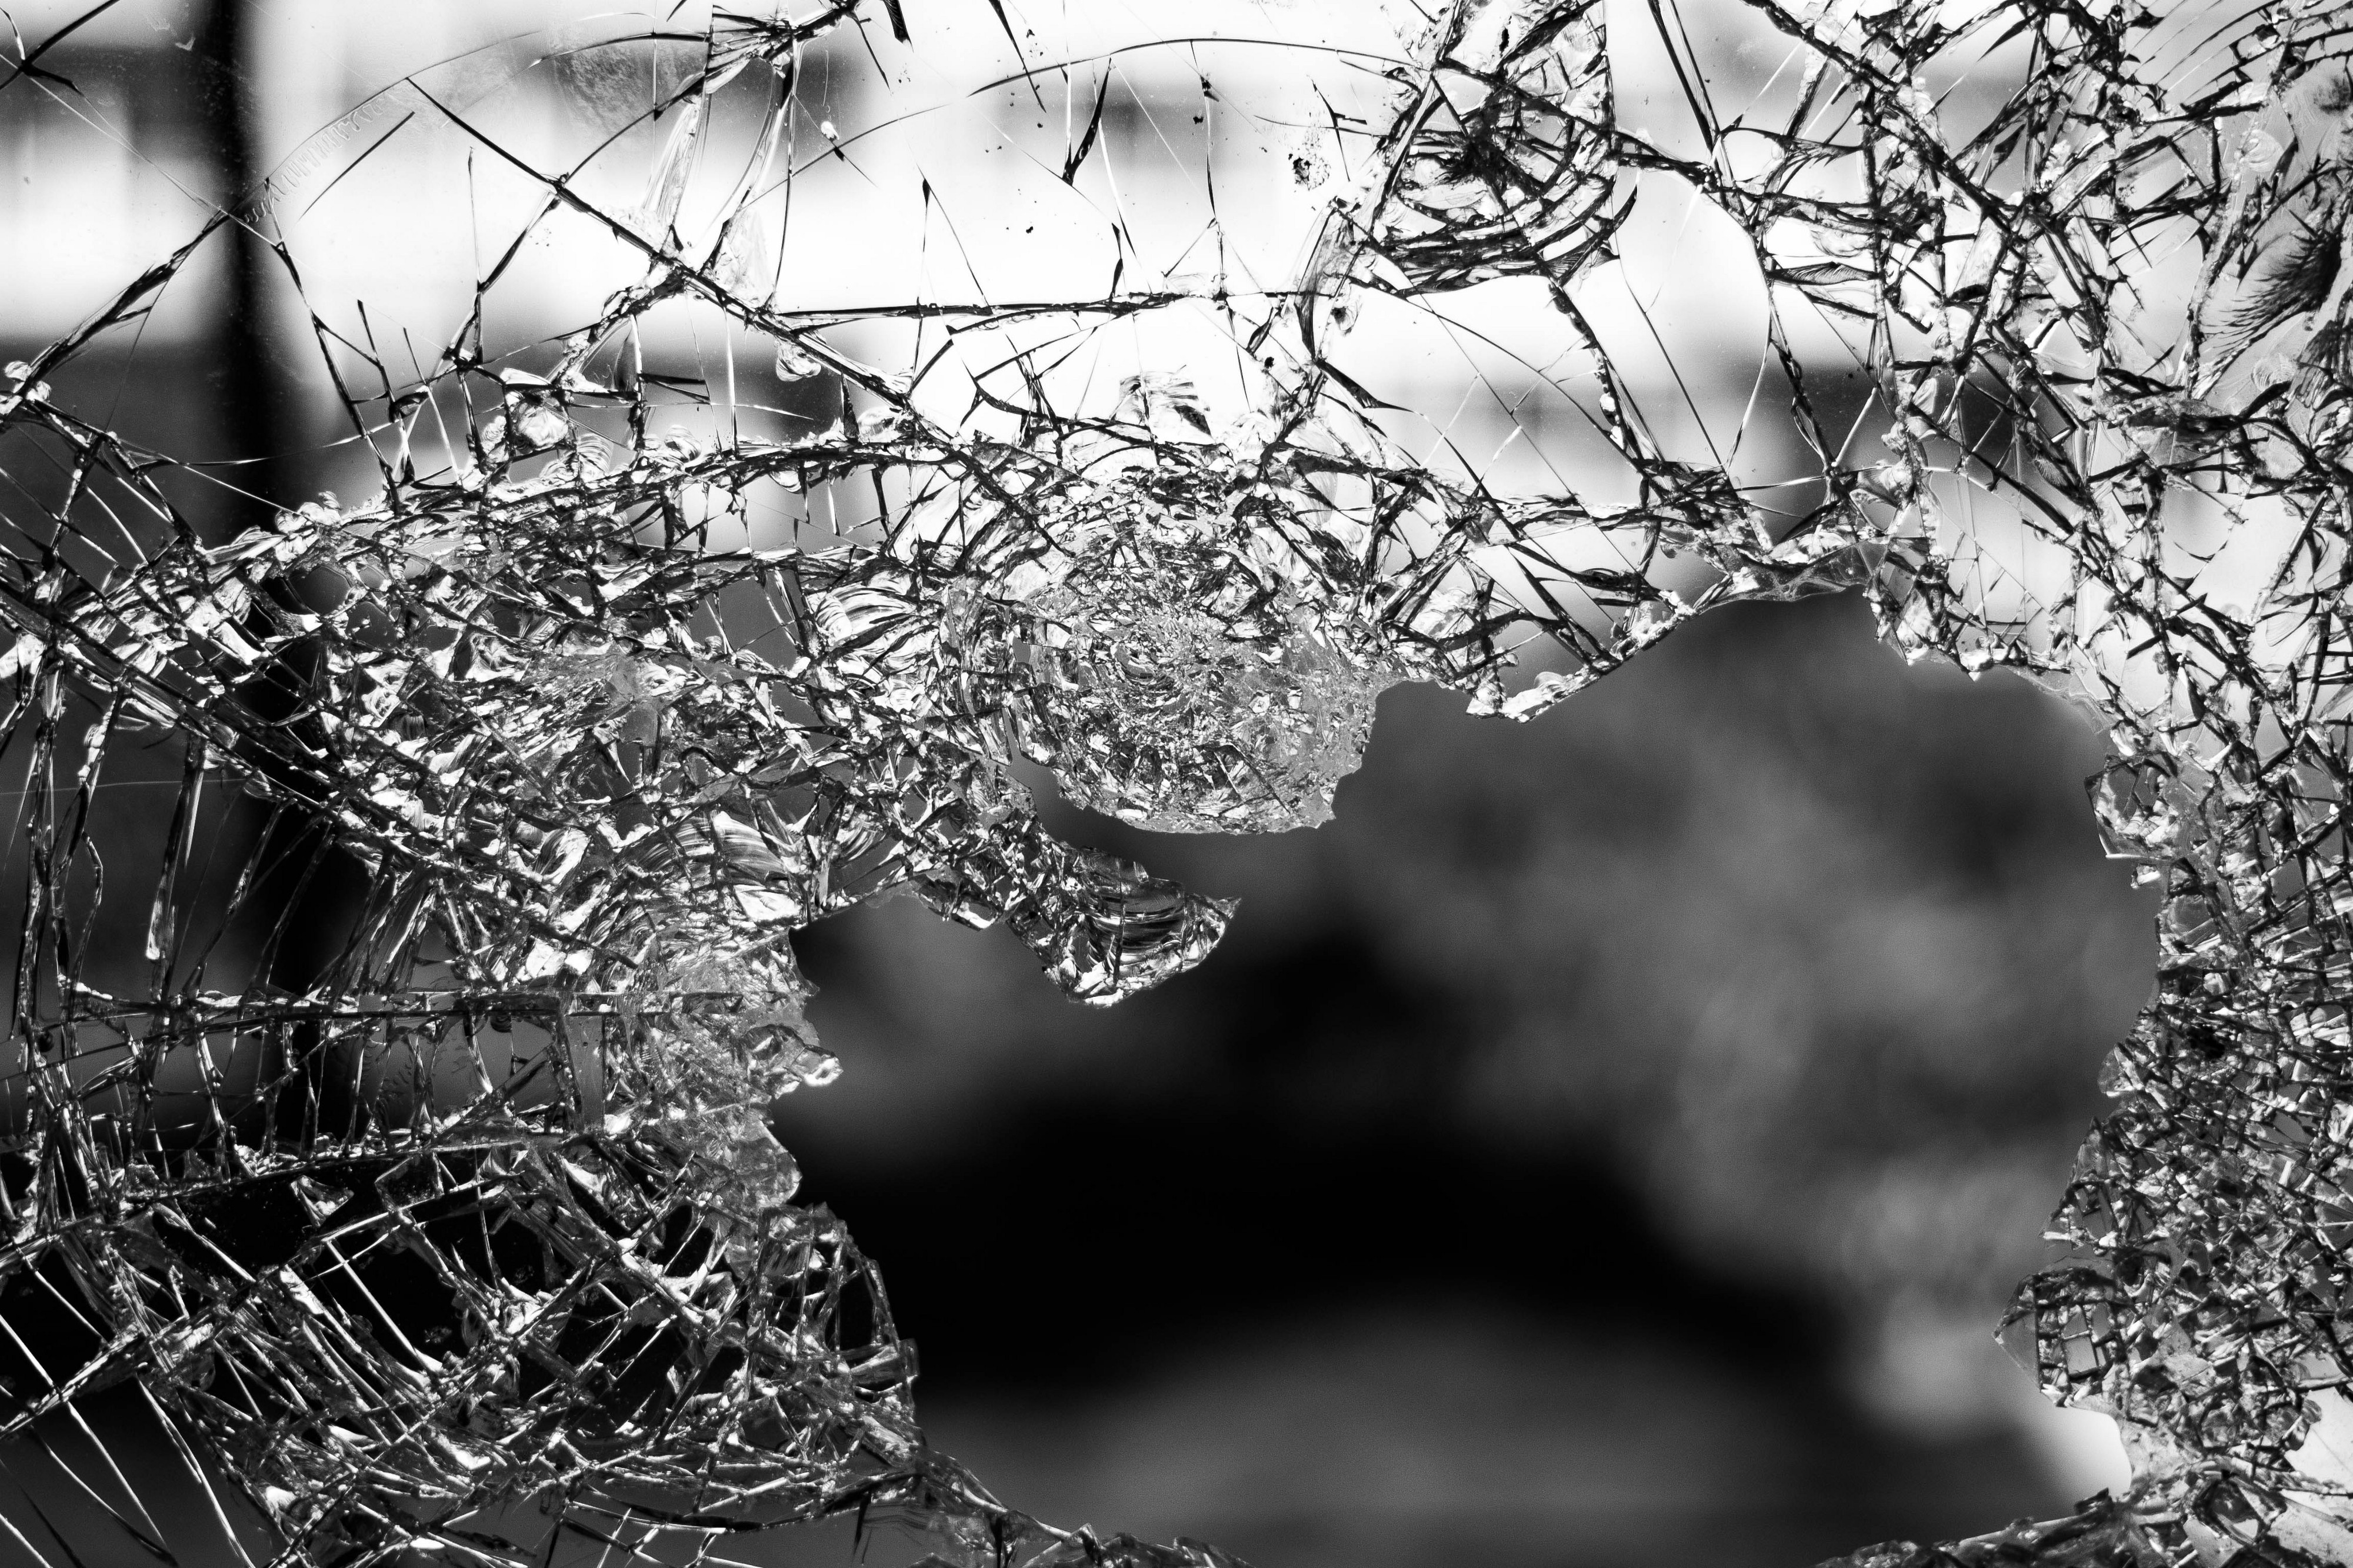 A shot of broken glass with a blurred background looking through a hole smashed into the glass.